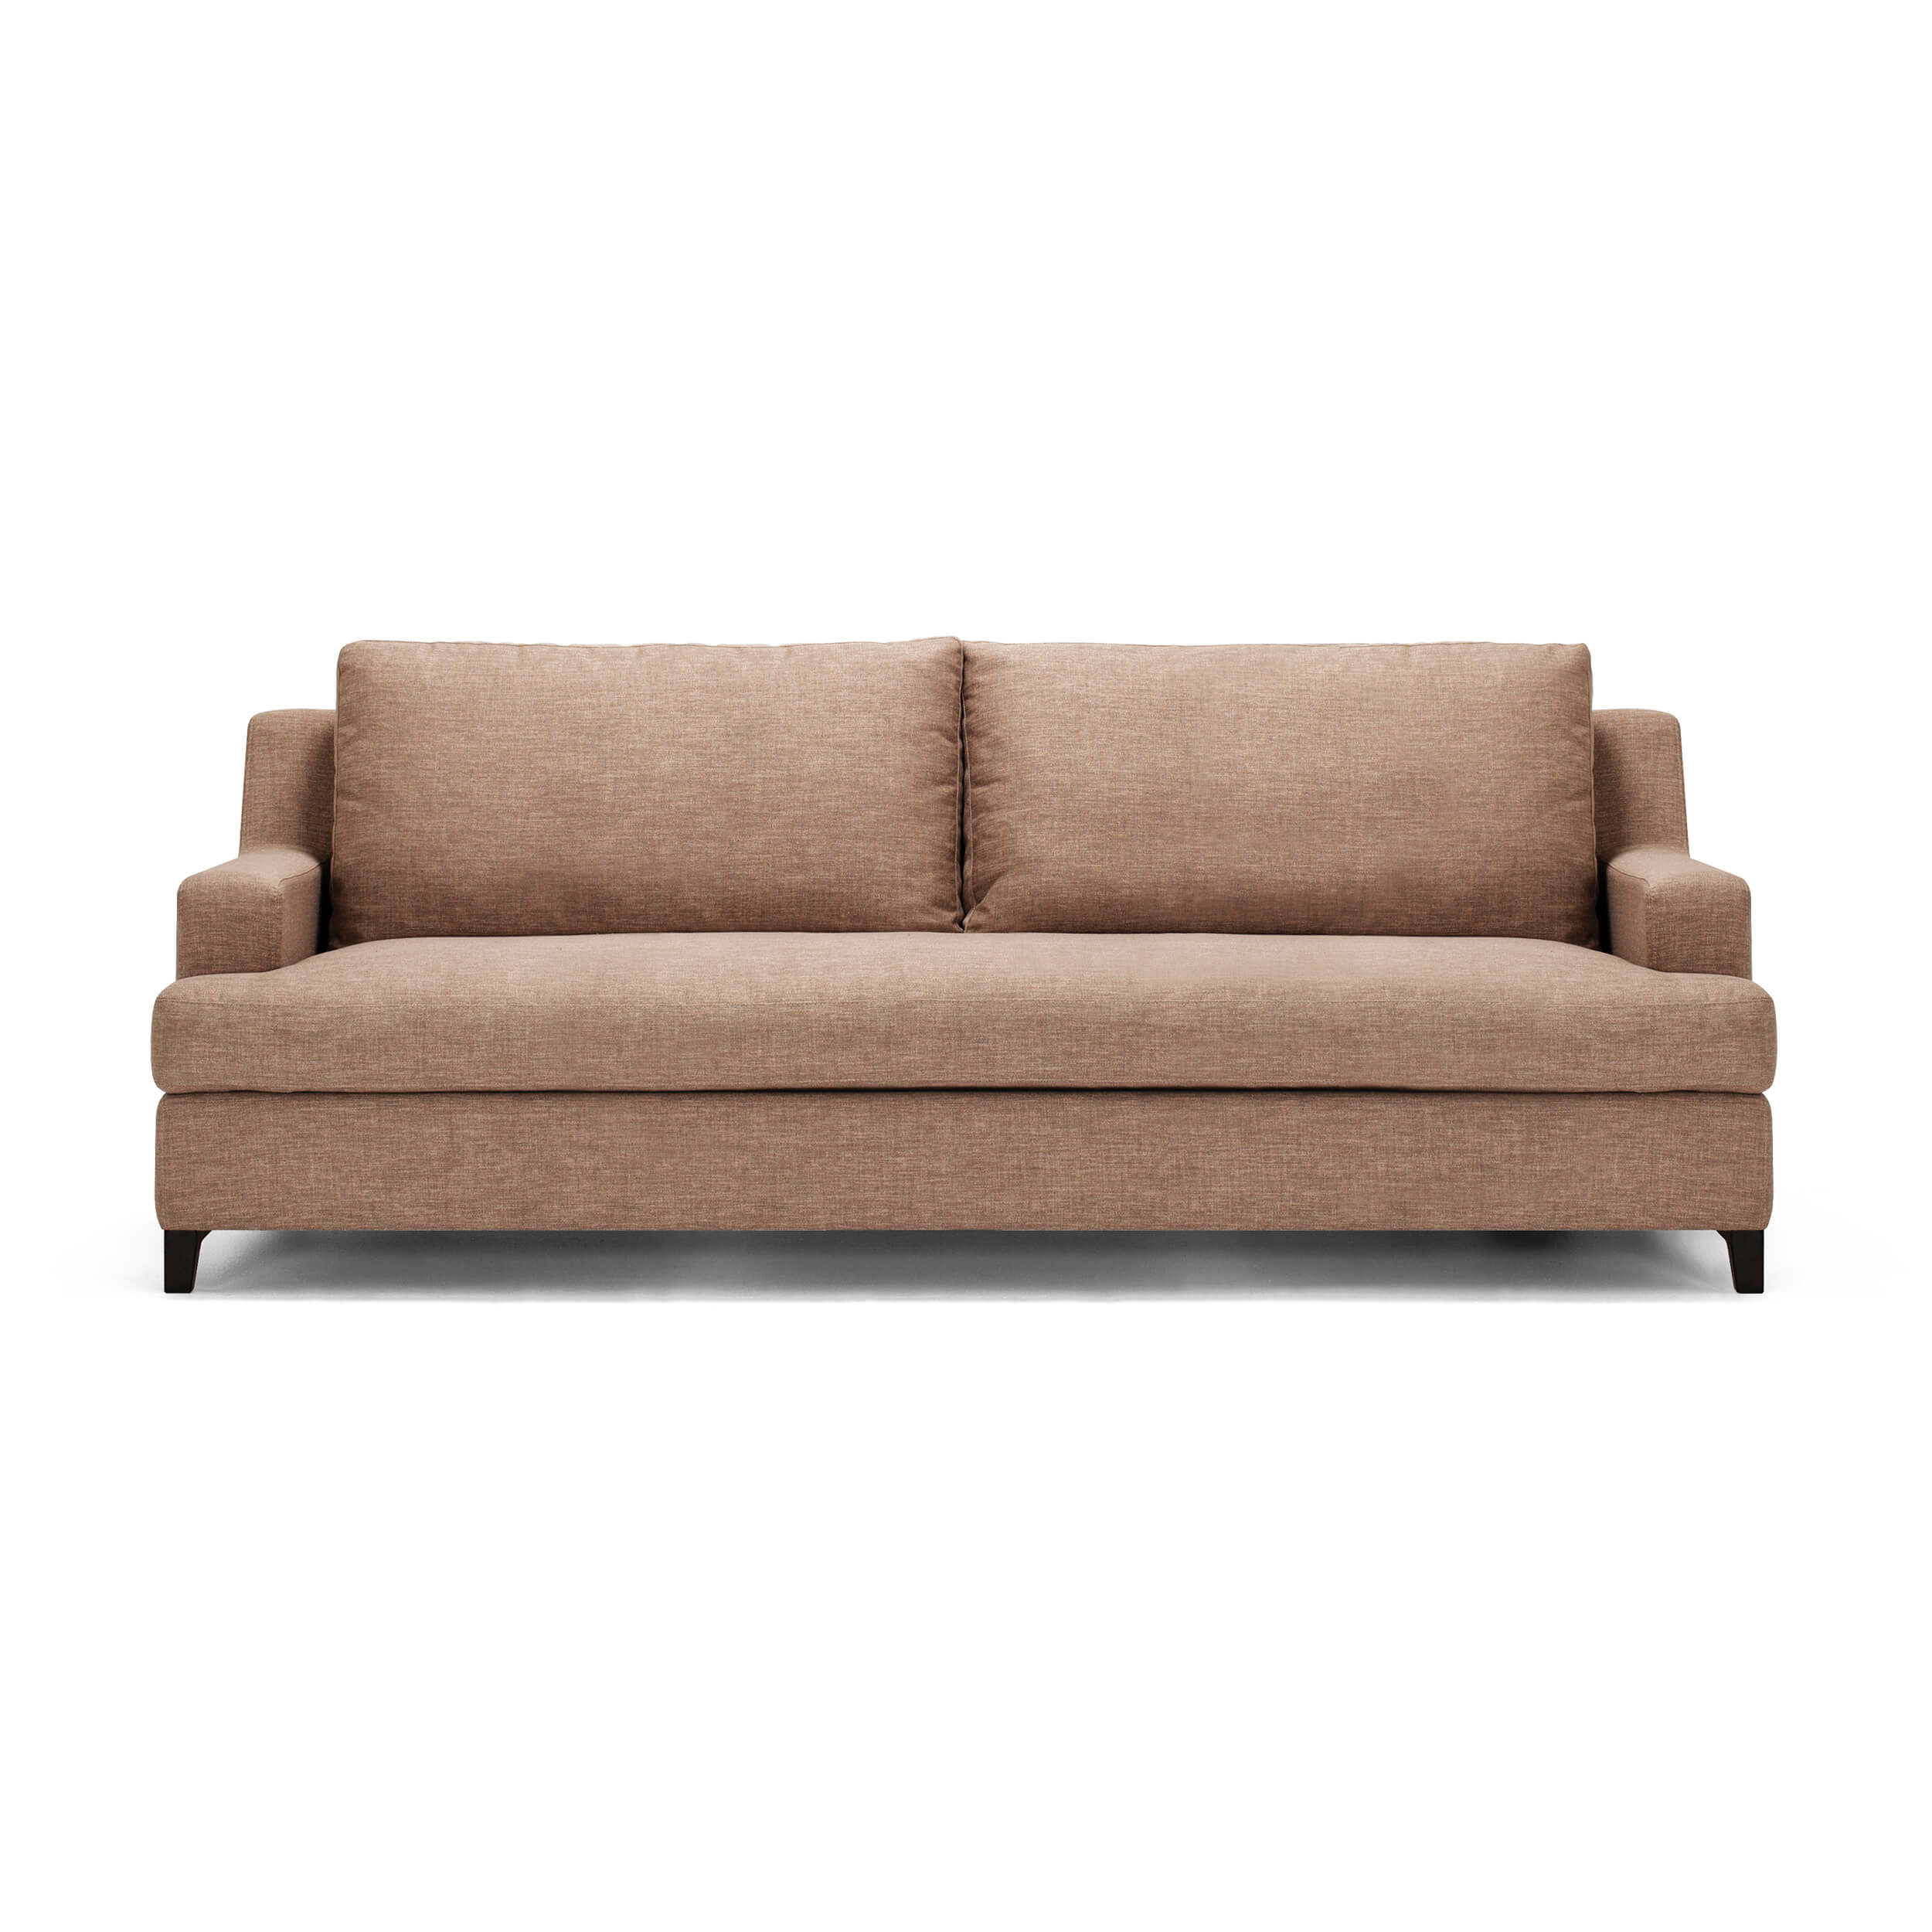 Blanche Sofa - Fabric